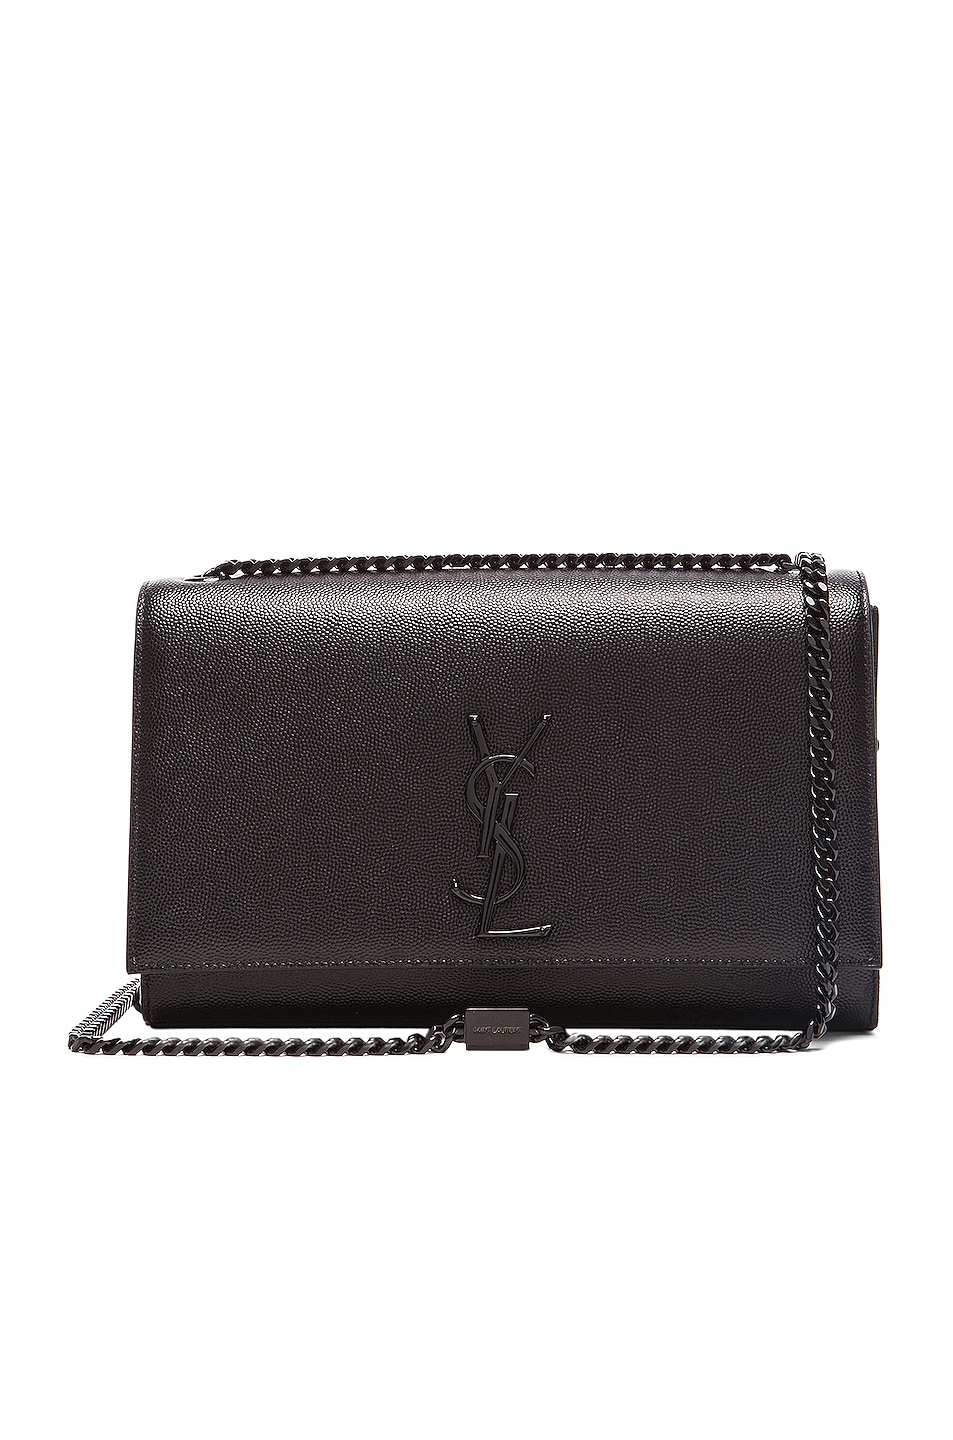 Image 1 of Saint Laurent Medium Monogramme Chain Bag & Black in Black